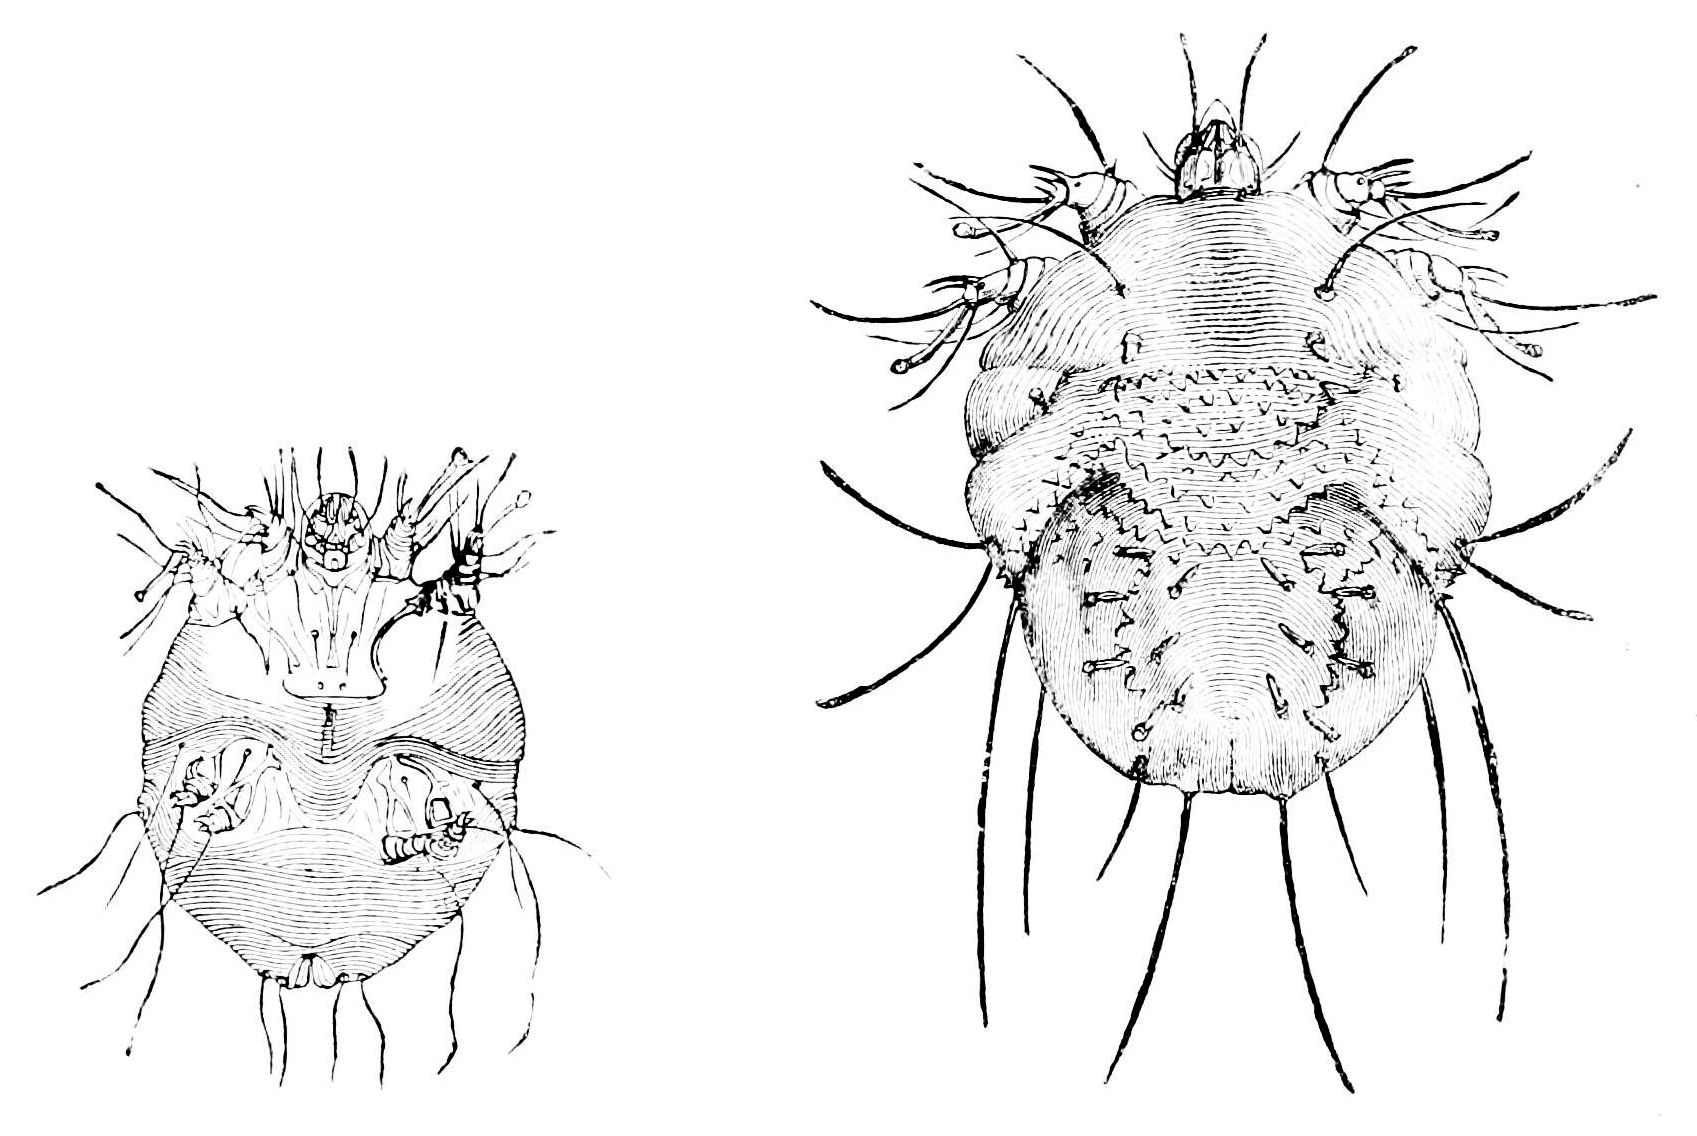 File:PSM V14 D526 Male and female sarcoptes scabiei.jpg